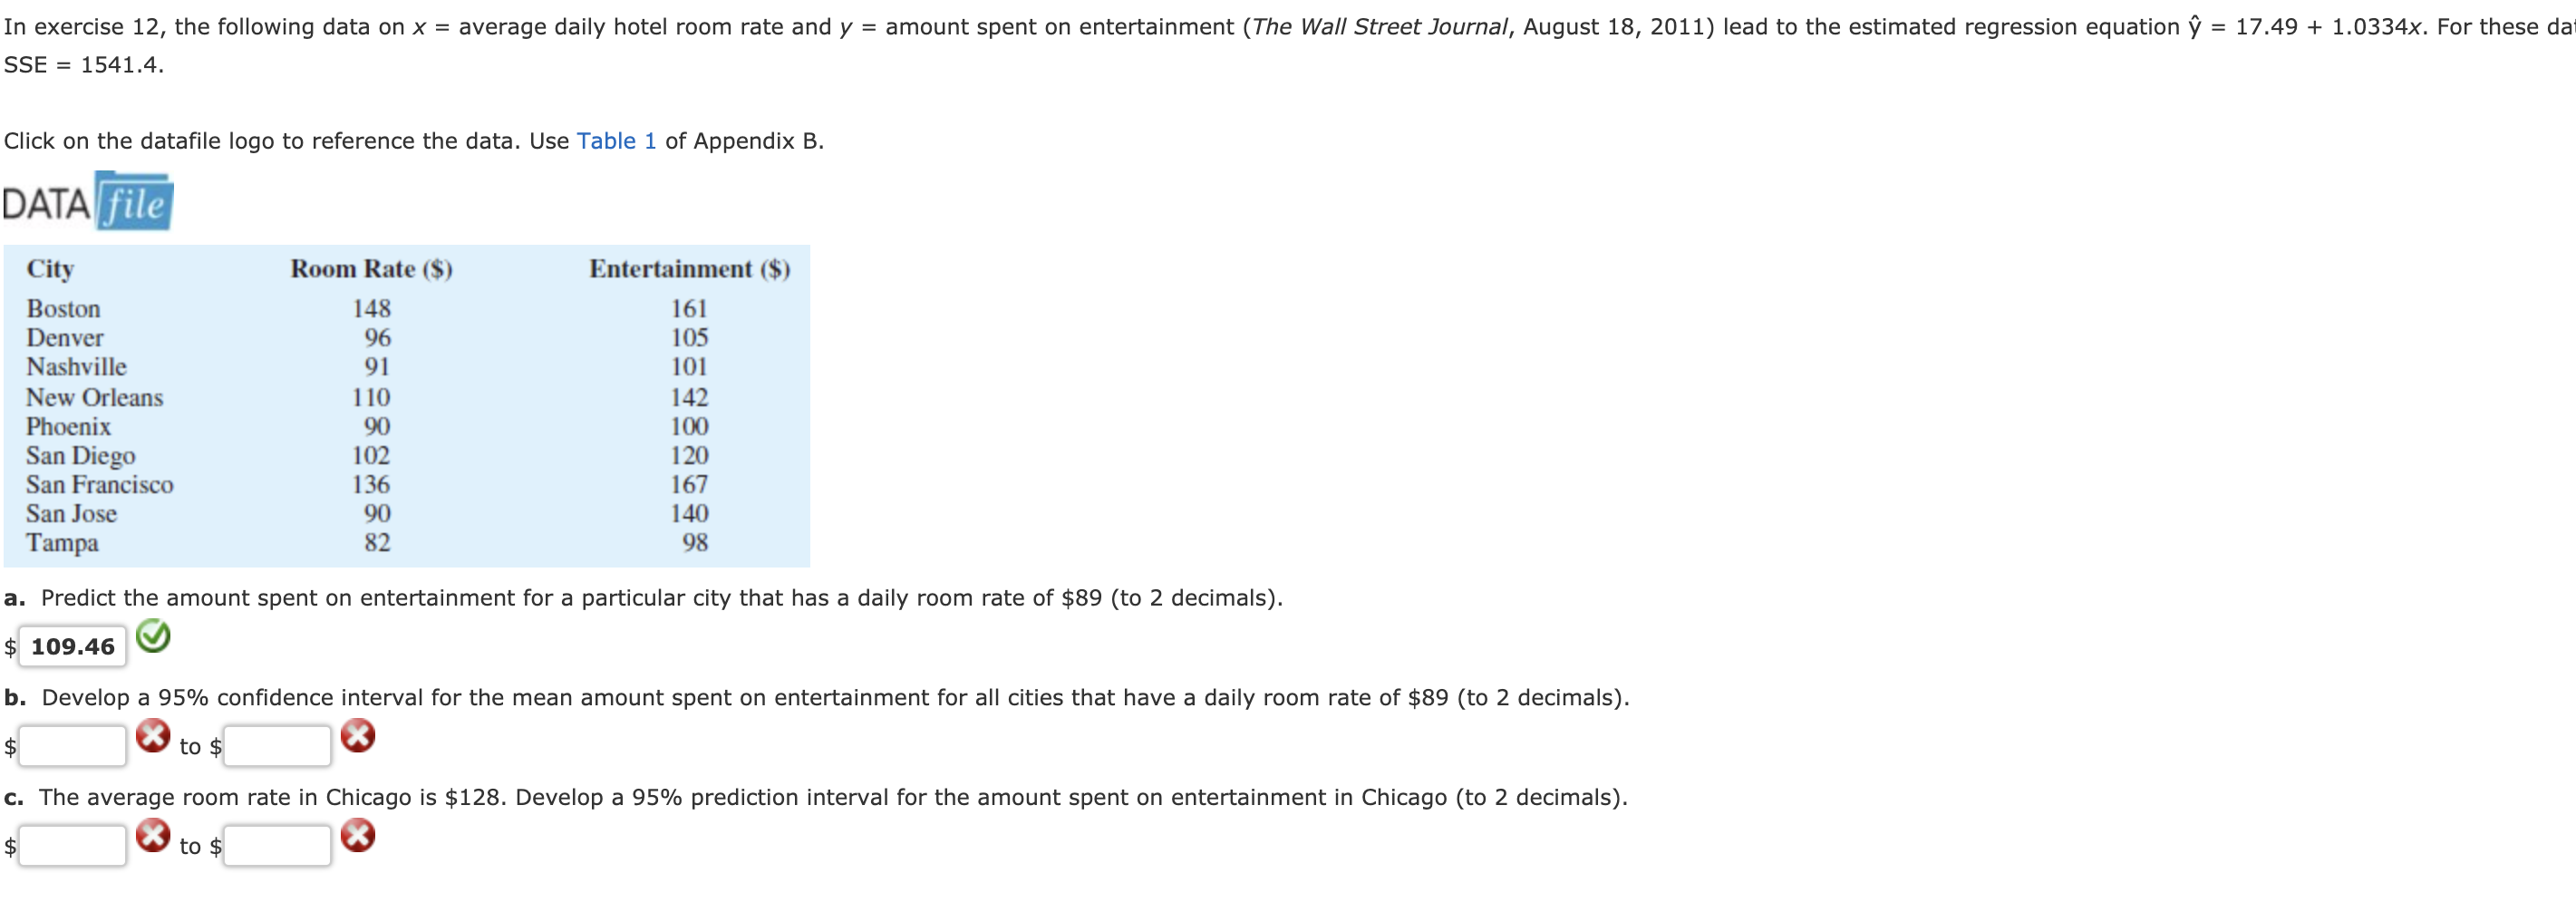 In exercise 12, the following data on x = average daily hotel room rate and y = amount spent on entertainment The Wall Street Journal, August 18, 2011) lead to the estimated regression equation y = 17.49 + 1.0334x. For these da SSE = 1 541 .4 Click on the datafile logo to reference the data. Use Table 1 of Appendix B. DATA file Entertainment ($) 161 105 101 142 100 120 167 140 98 Room Rate (S) 148 96 91 110 90 102 136 90 82 City Boston Denver Nashville New Orleans Phoenix San Diego San Francisco San Jose Tampa a. Predict the amount spent on entertainment for a particular city that has a daily room rate of $89 (to 2 decimals) $109.46 b. Develop a 95% confidence interval for the mean amount spent on entertainment for all cities that have a daily room rate of $89 (to 2 decimals) to $ c. The average room rate in Chicago is $128. Develop a 95% prediction interval for the amount spent on entertainment in Chicago (to 2 decimals) to $